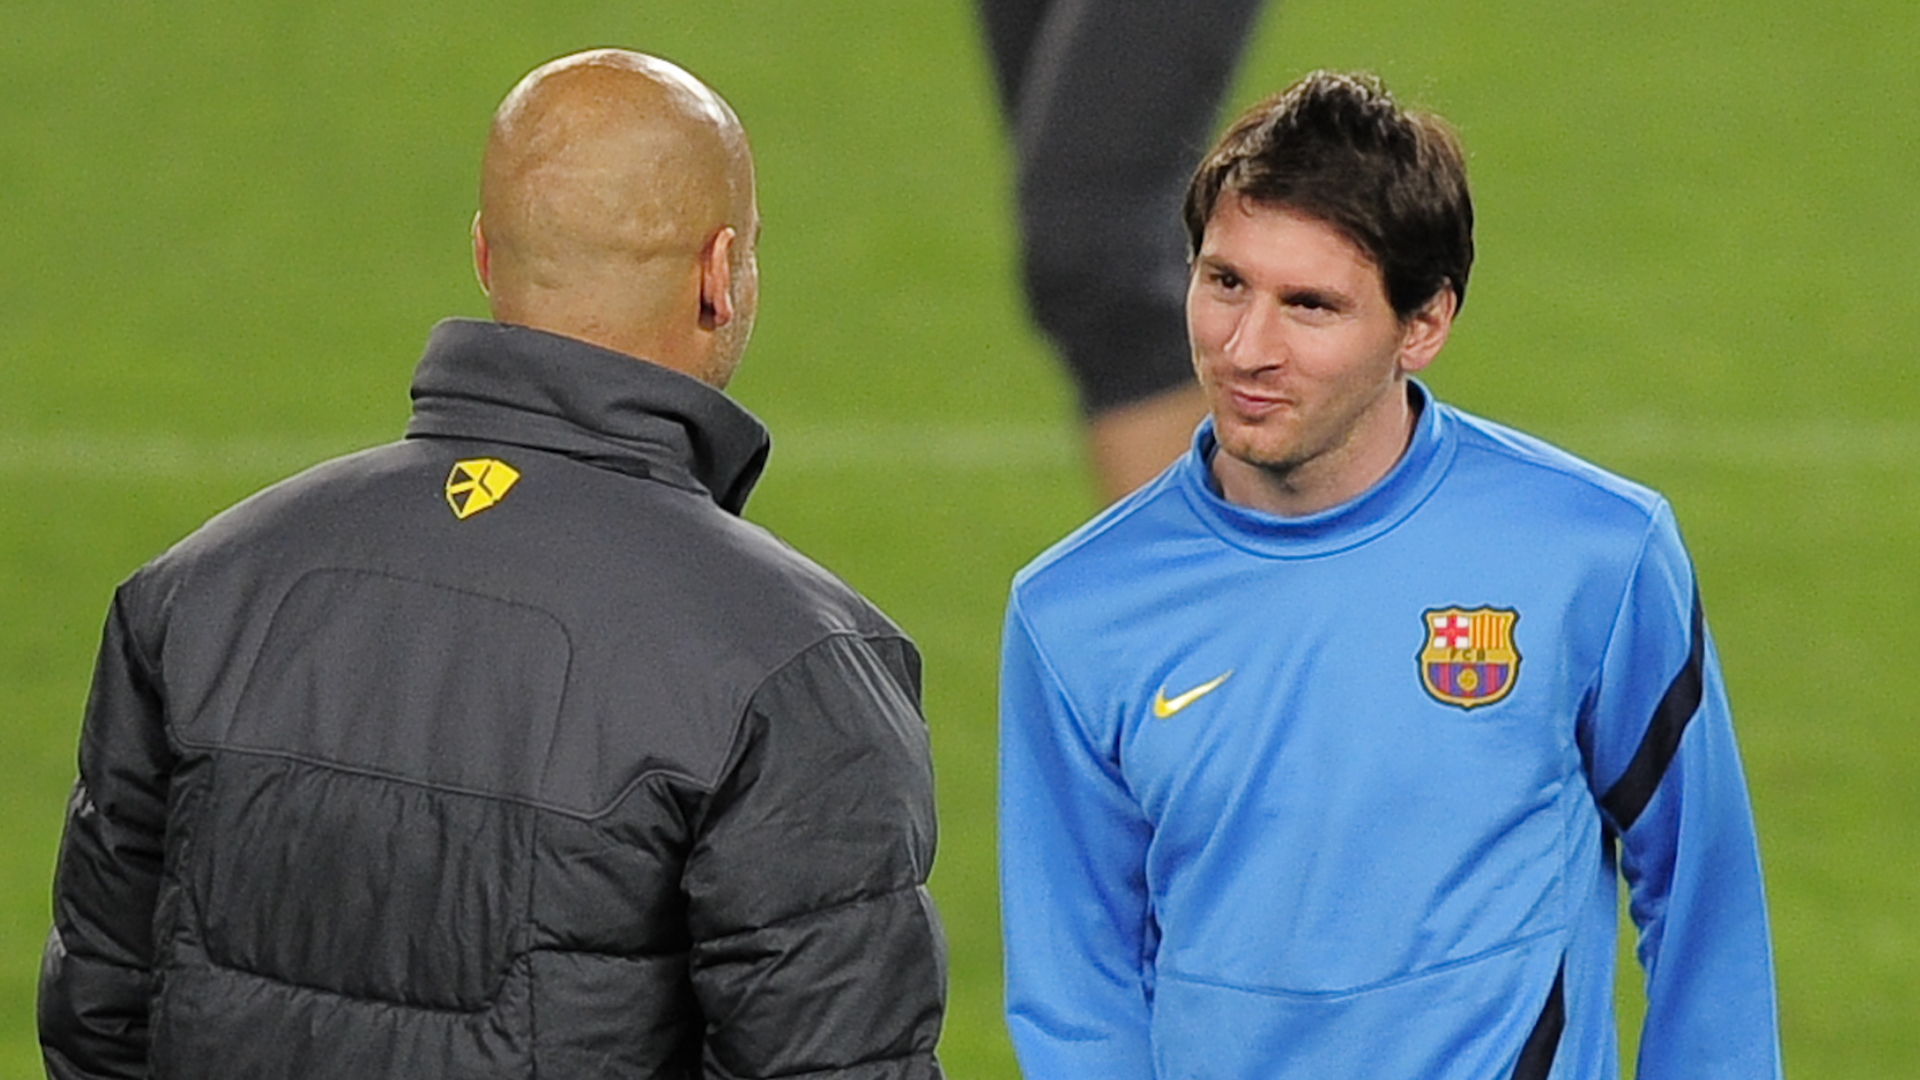 'I remember when Guardiola explained the false nine' - Messi talks through positional evolution at Barca